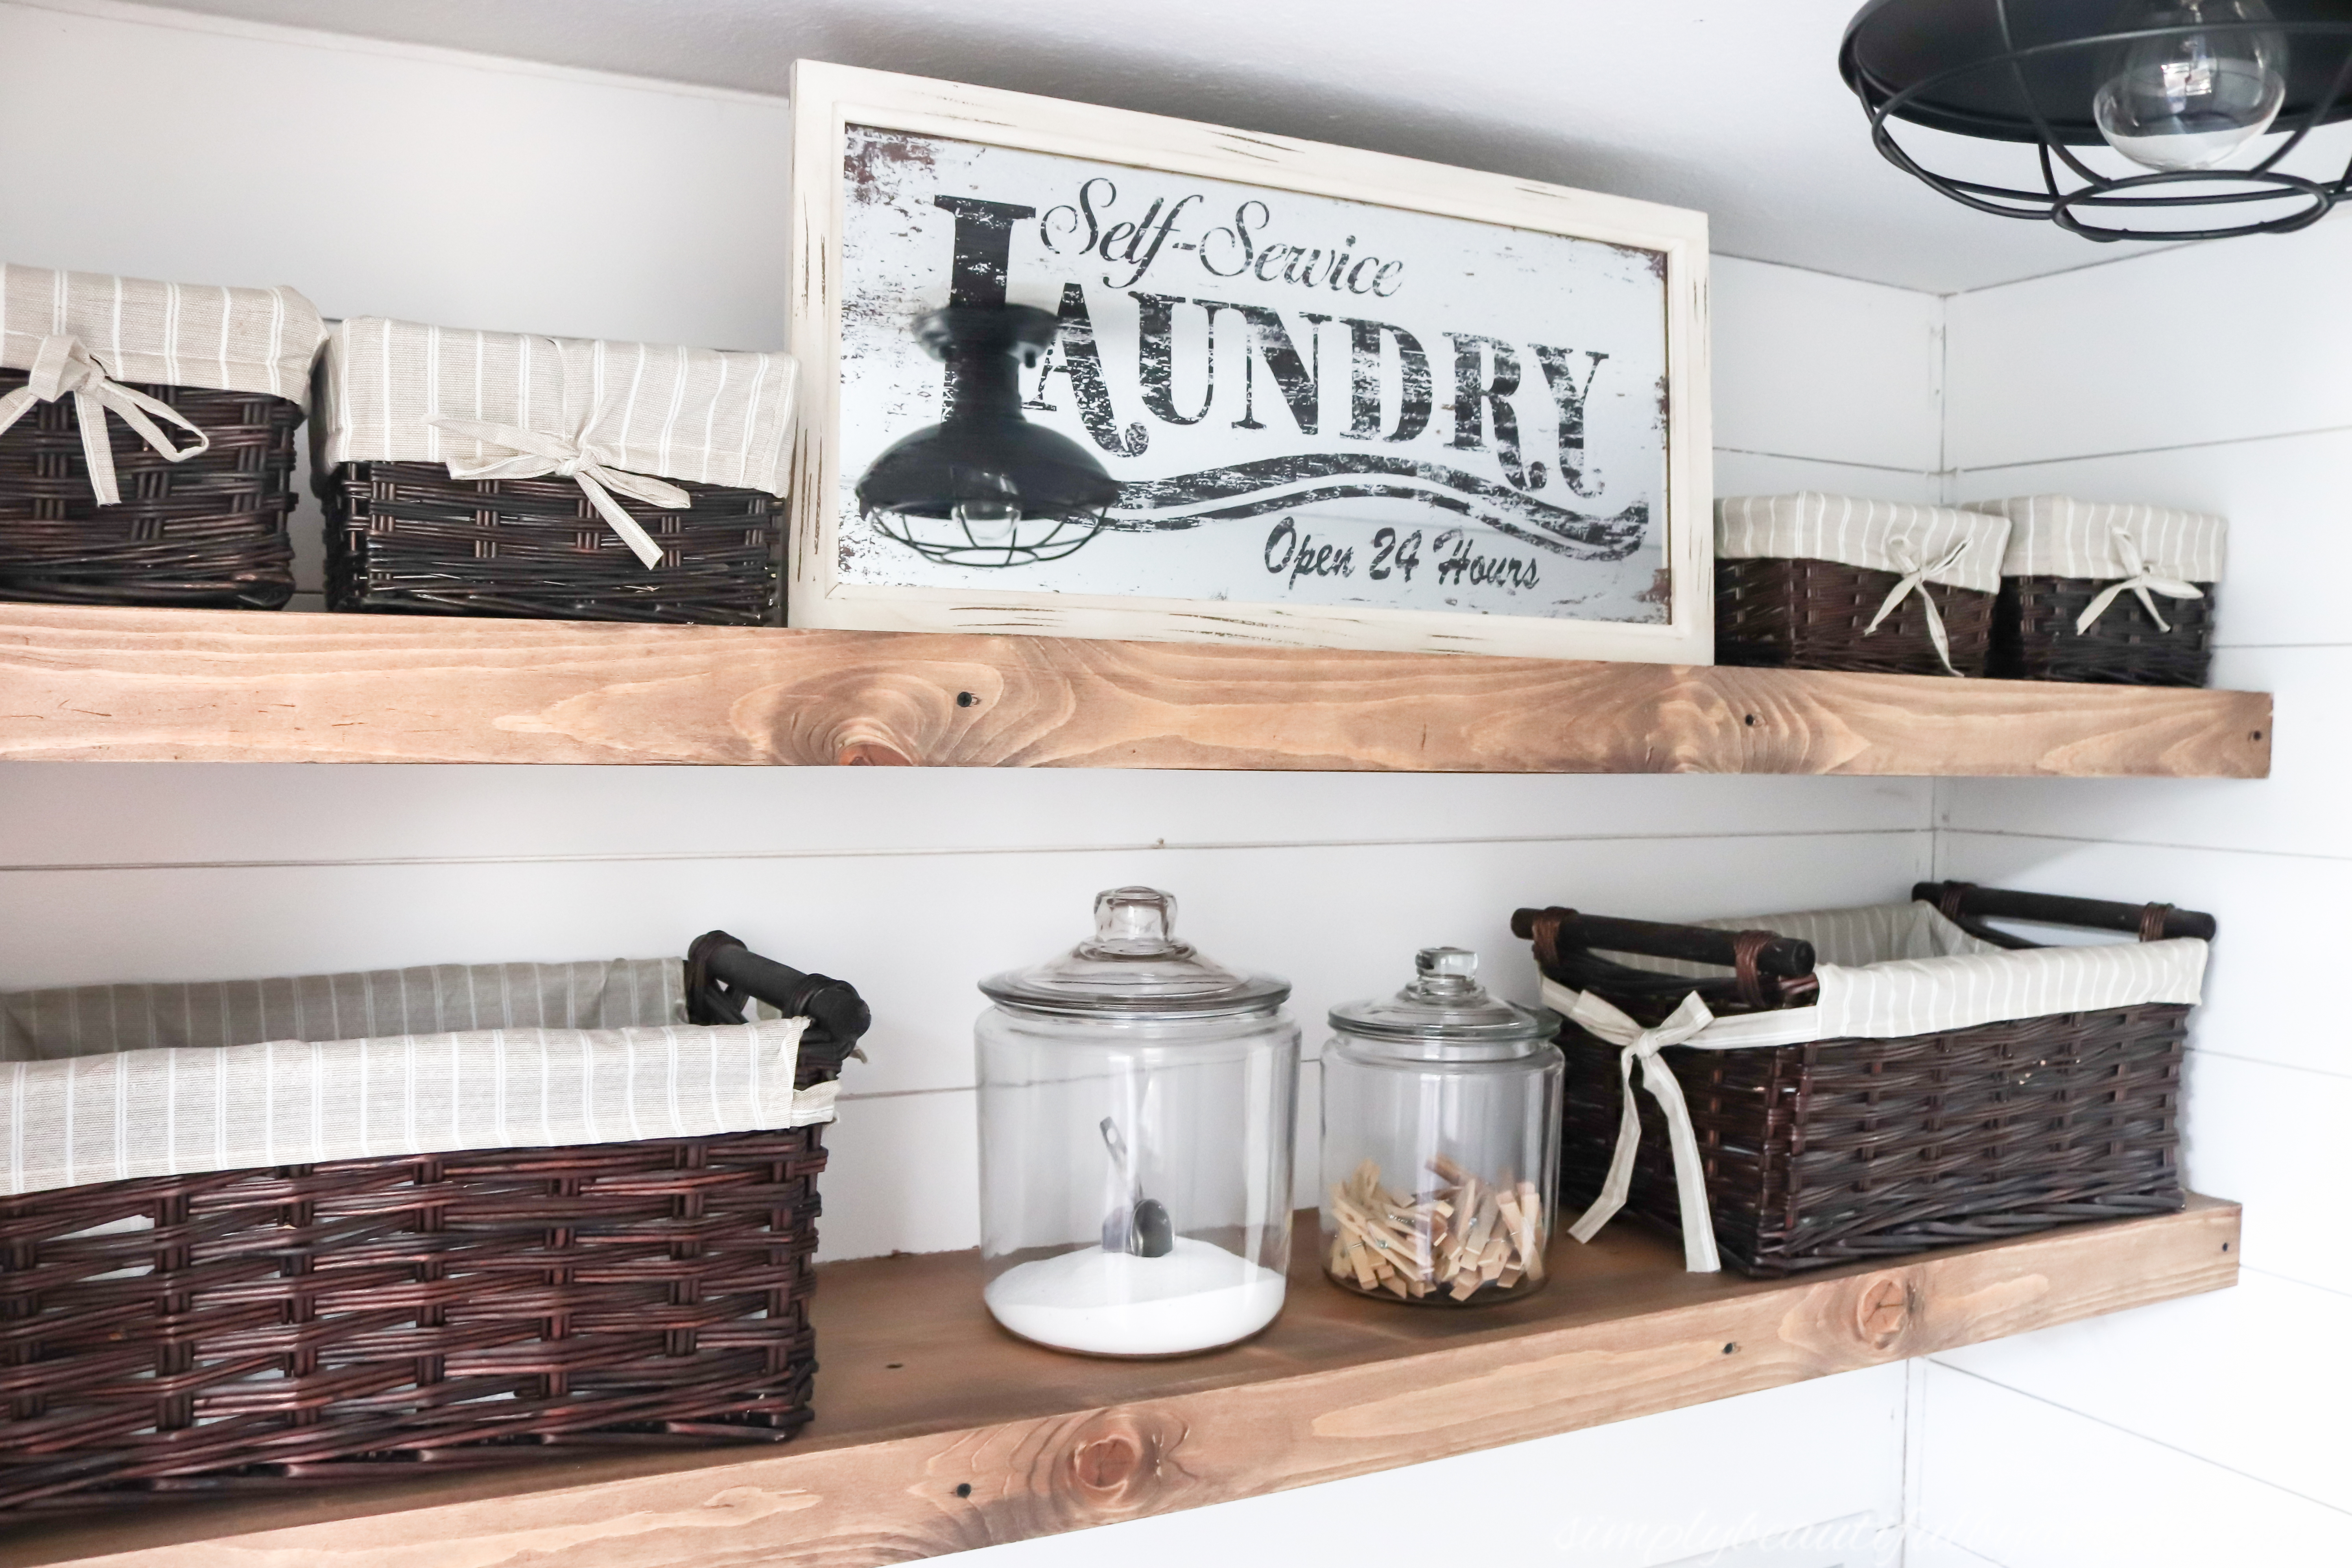 Brilliant Diy Rustic Farmhouse Laundry Room Shelves Simply Beautiful Best Image Libraries Barepthycampuscom